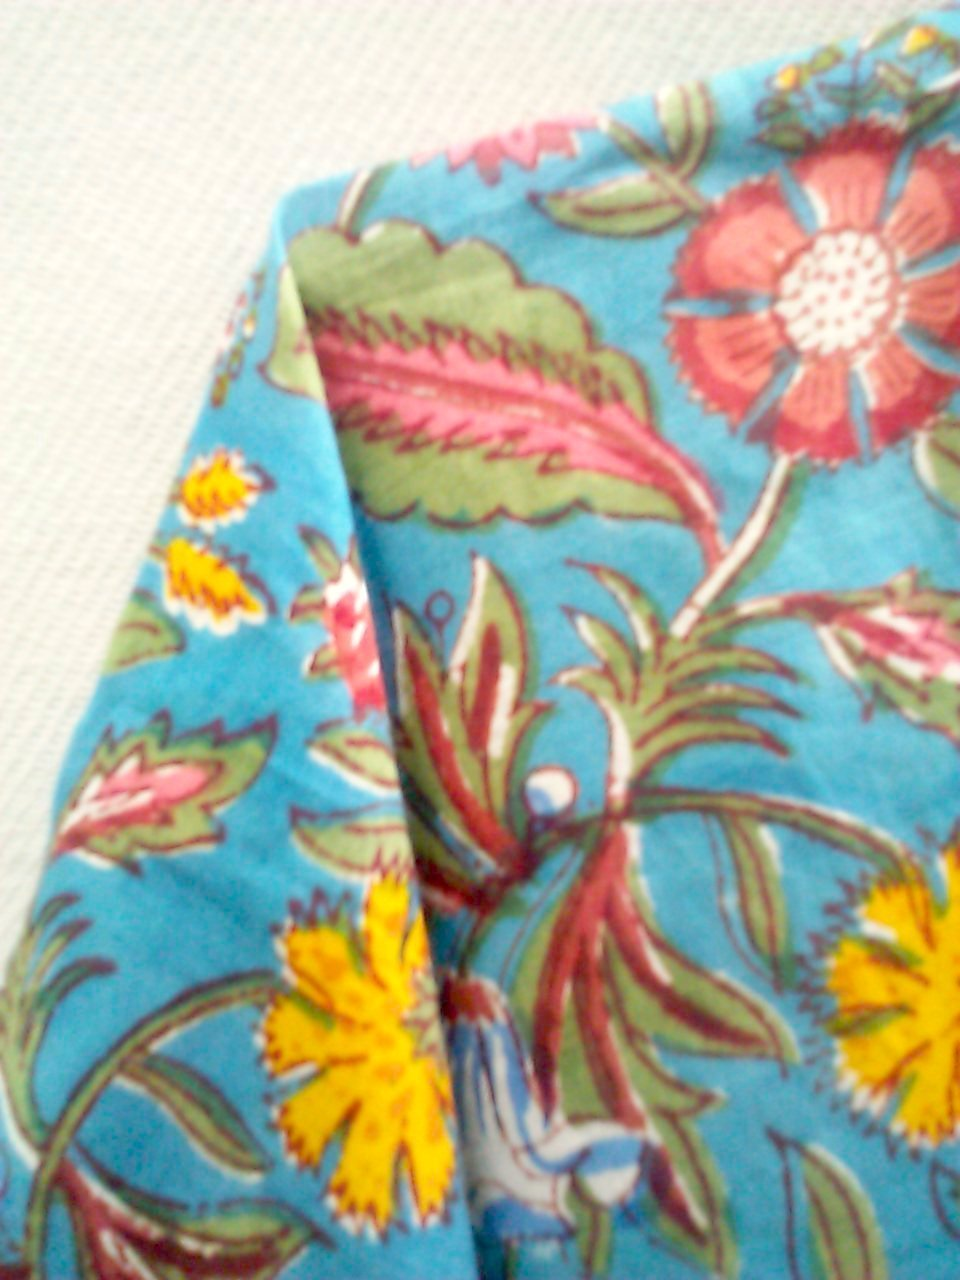 d11aaf28c8 Amazon.com: Teal Blue Coral & Red Chinoiserie Floral Anokhi Hand block  print Long Indian cotton Kaftan One Size: Handmade